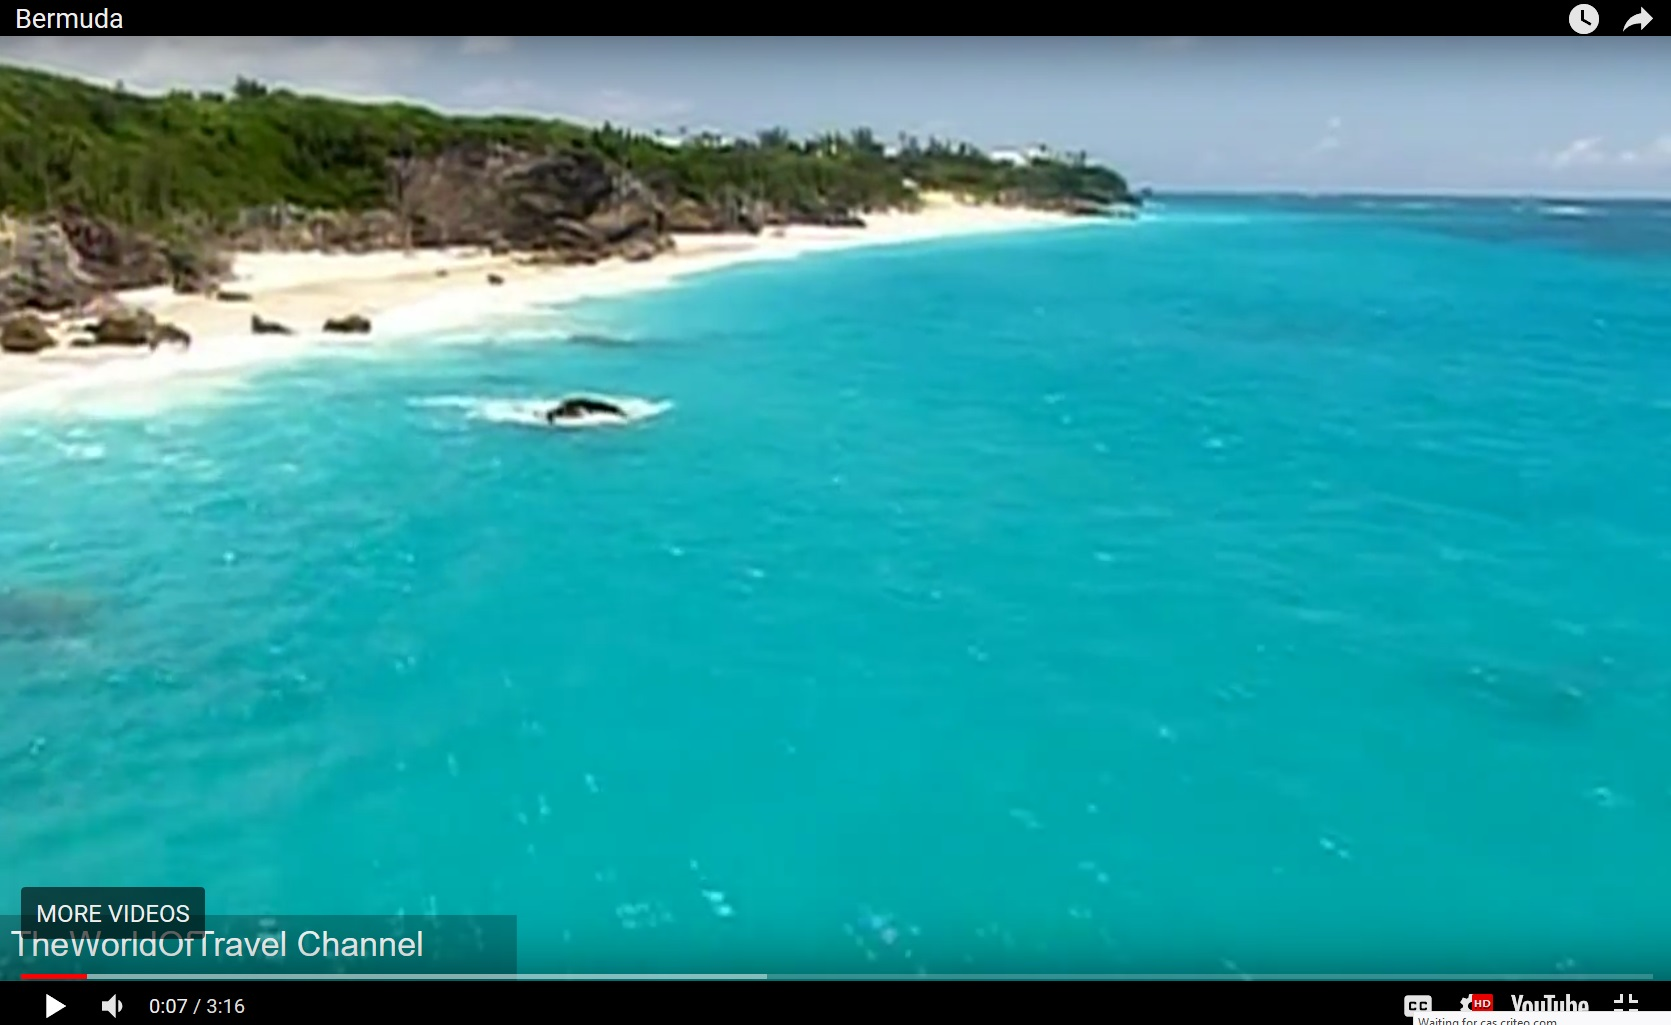 Watch amazing Bermuda videos